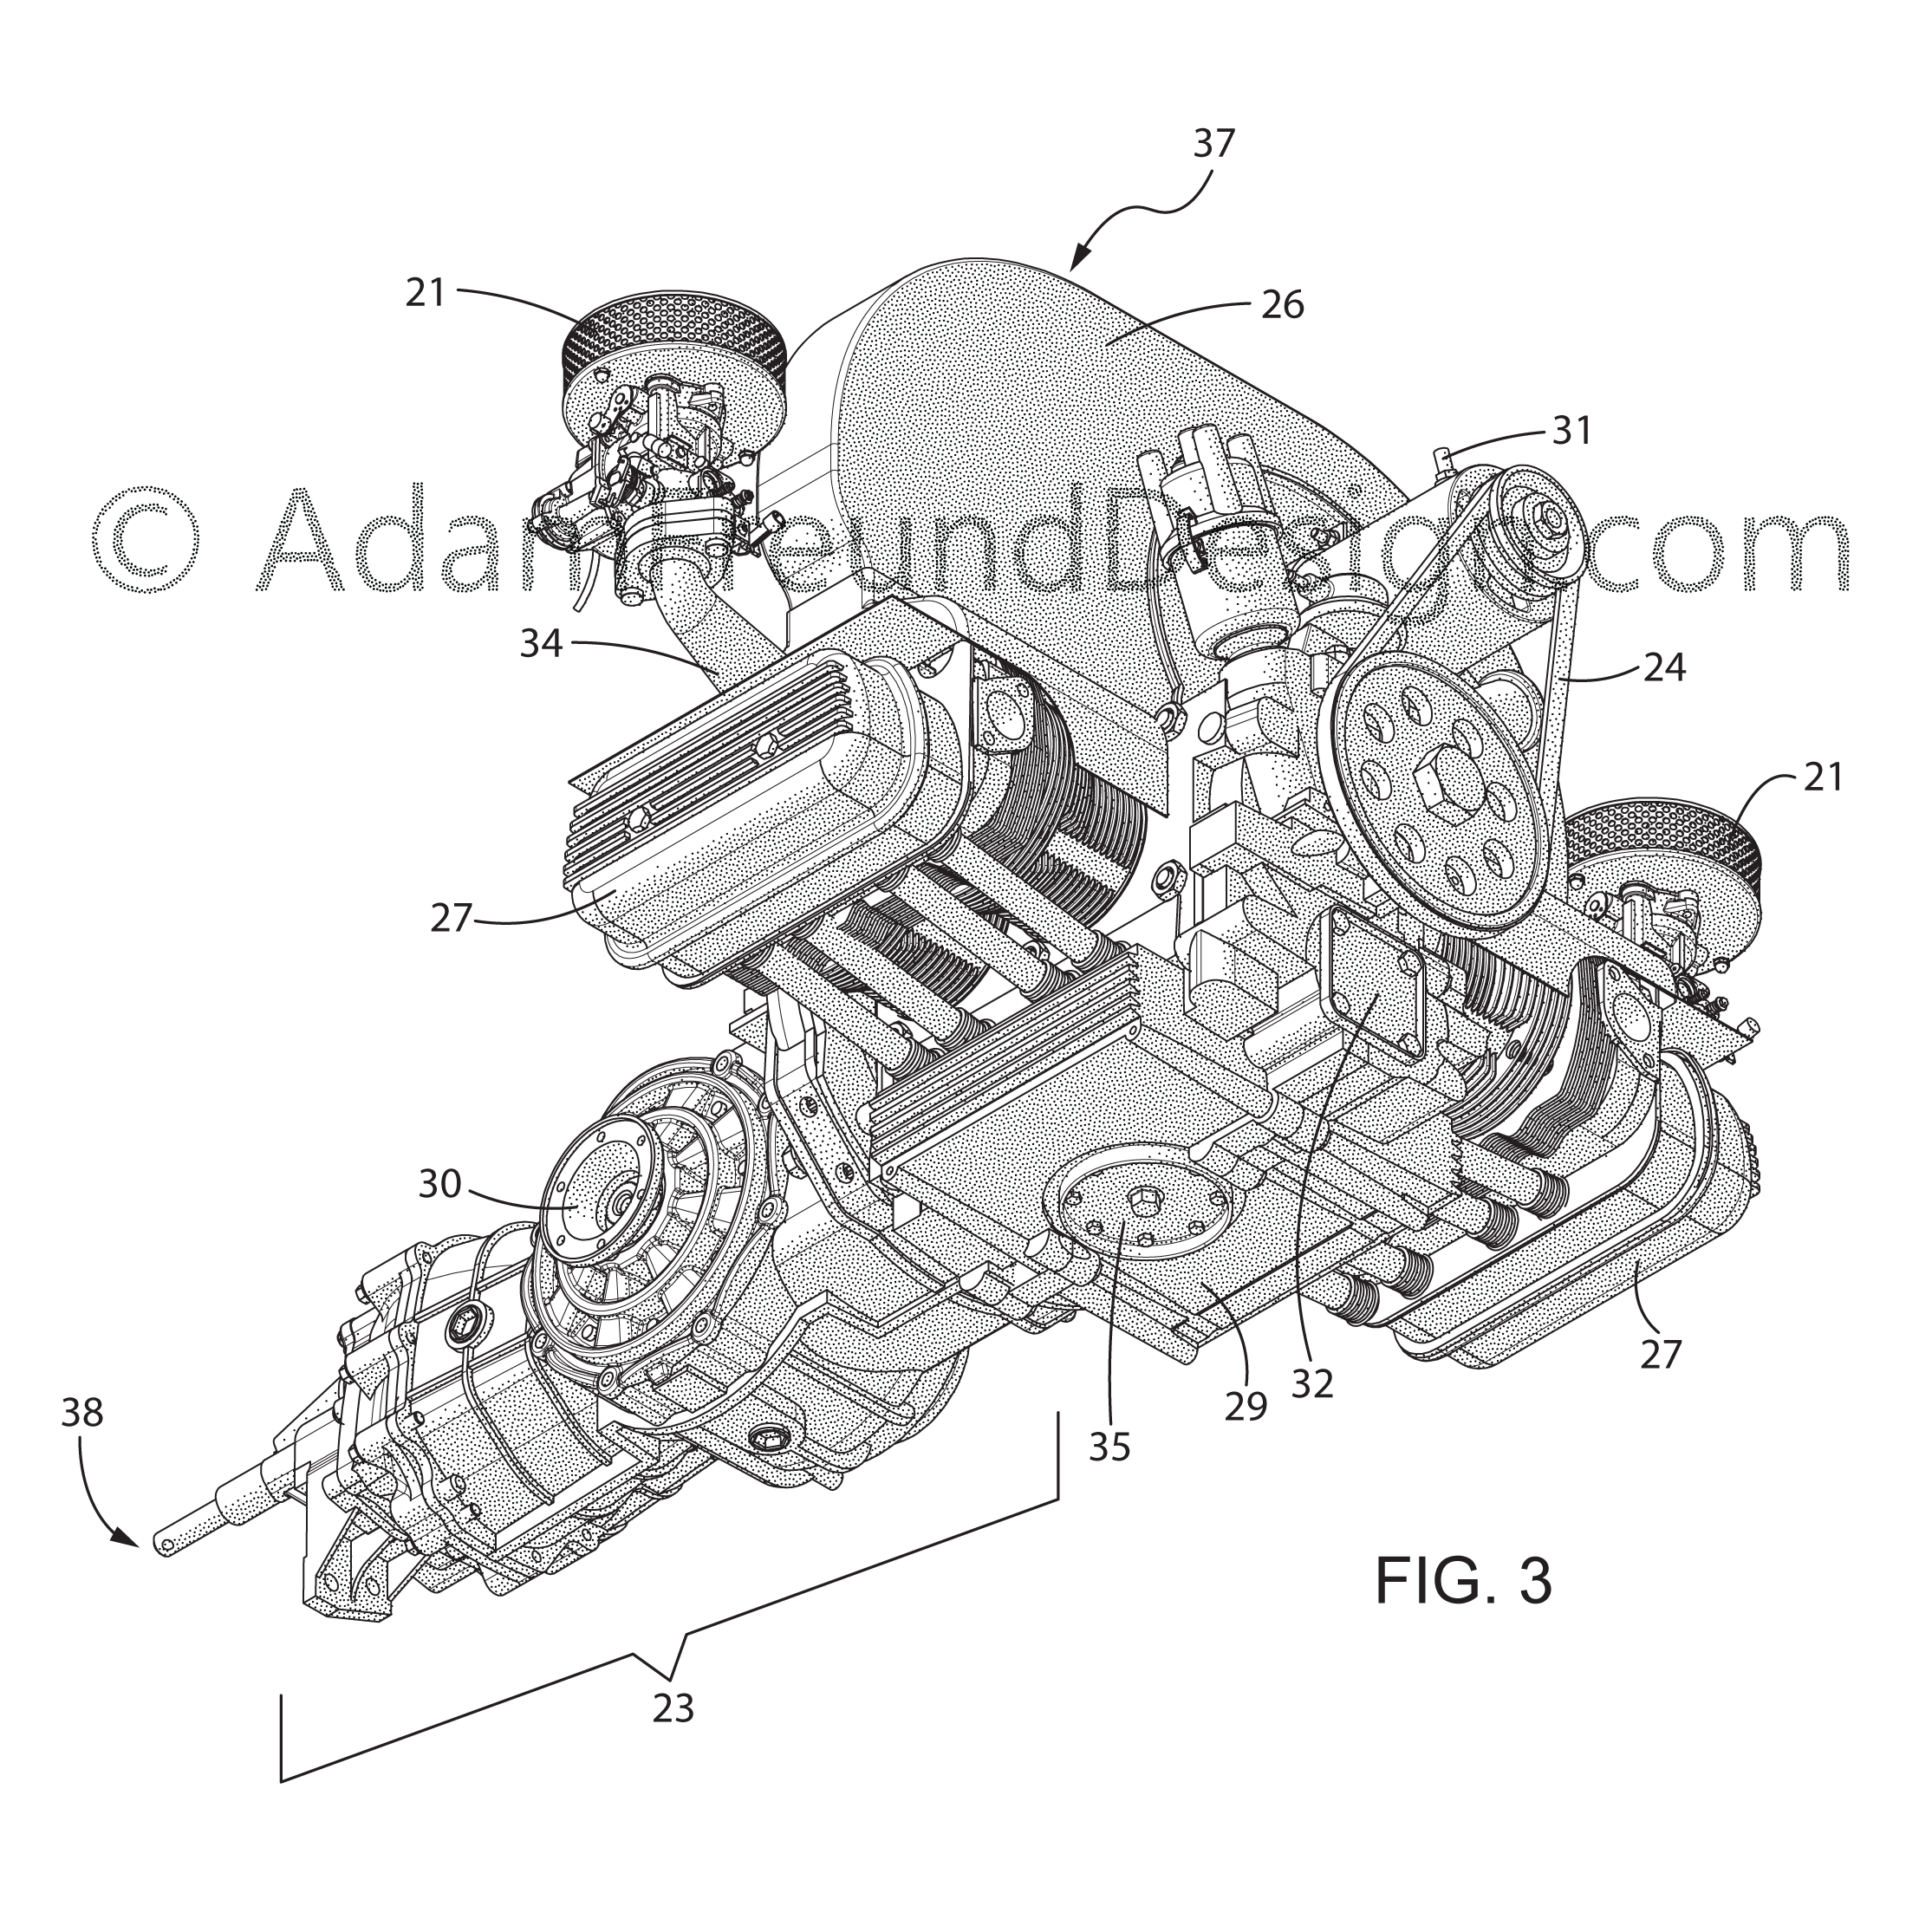 Car engine utility patent drawing